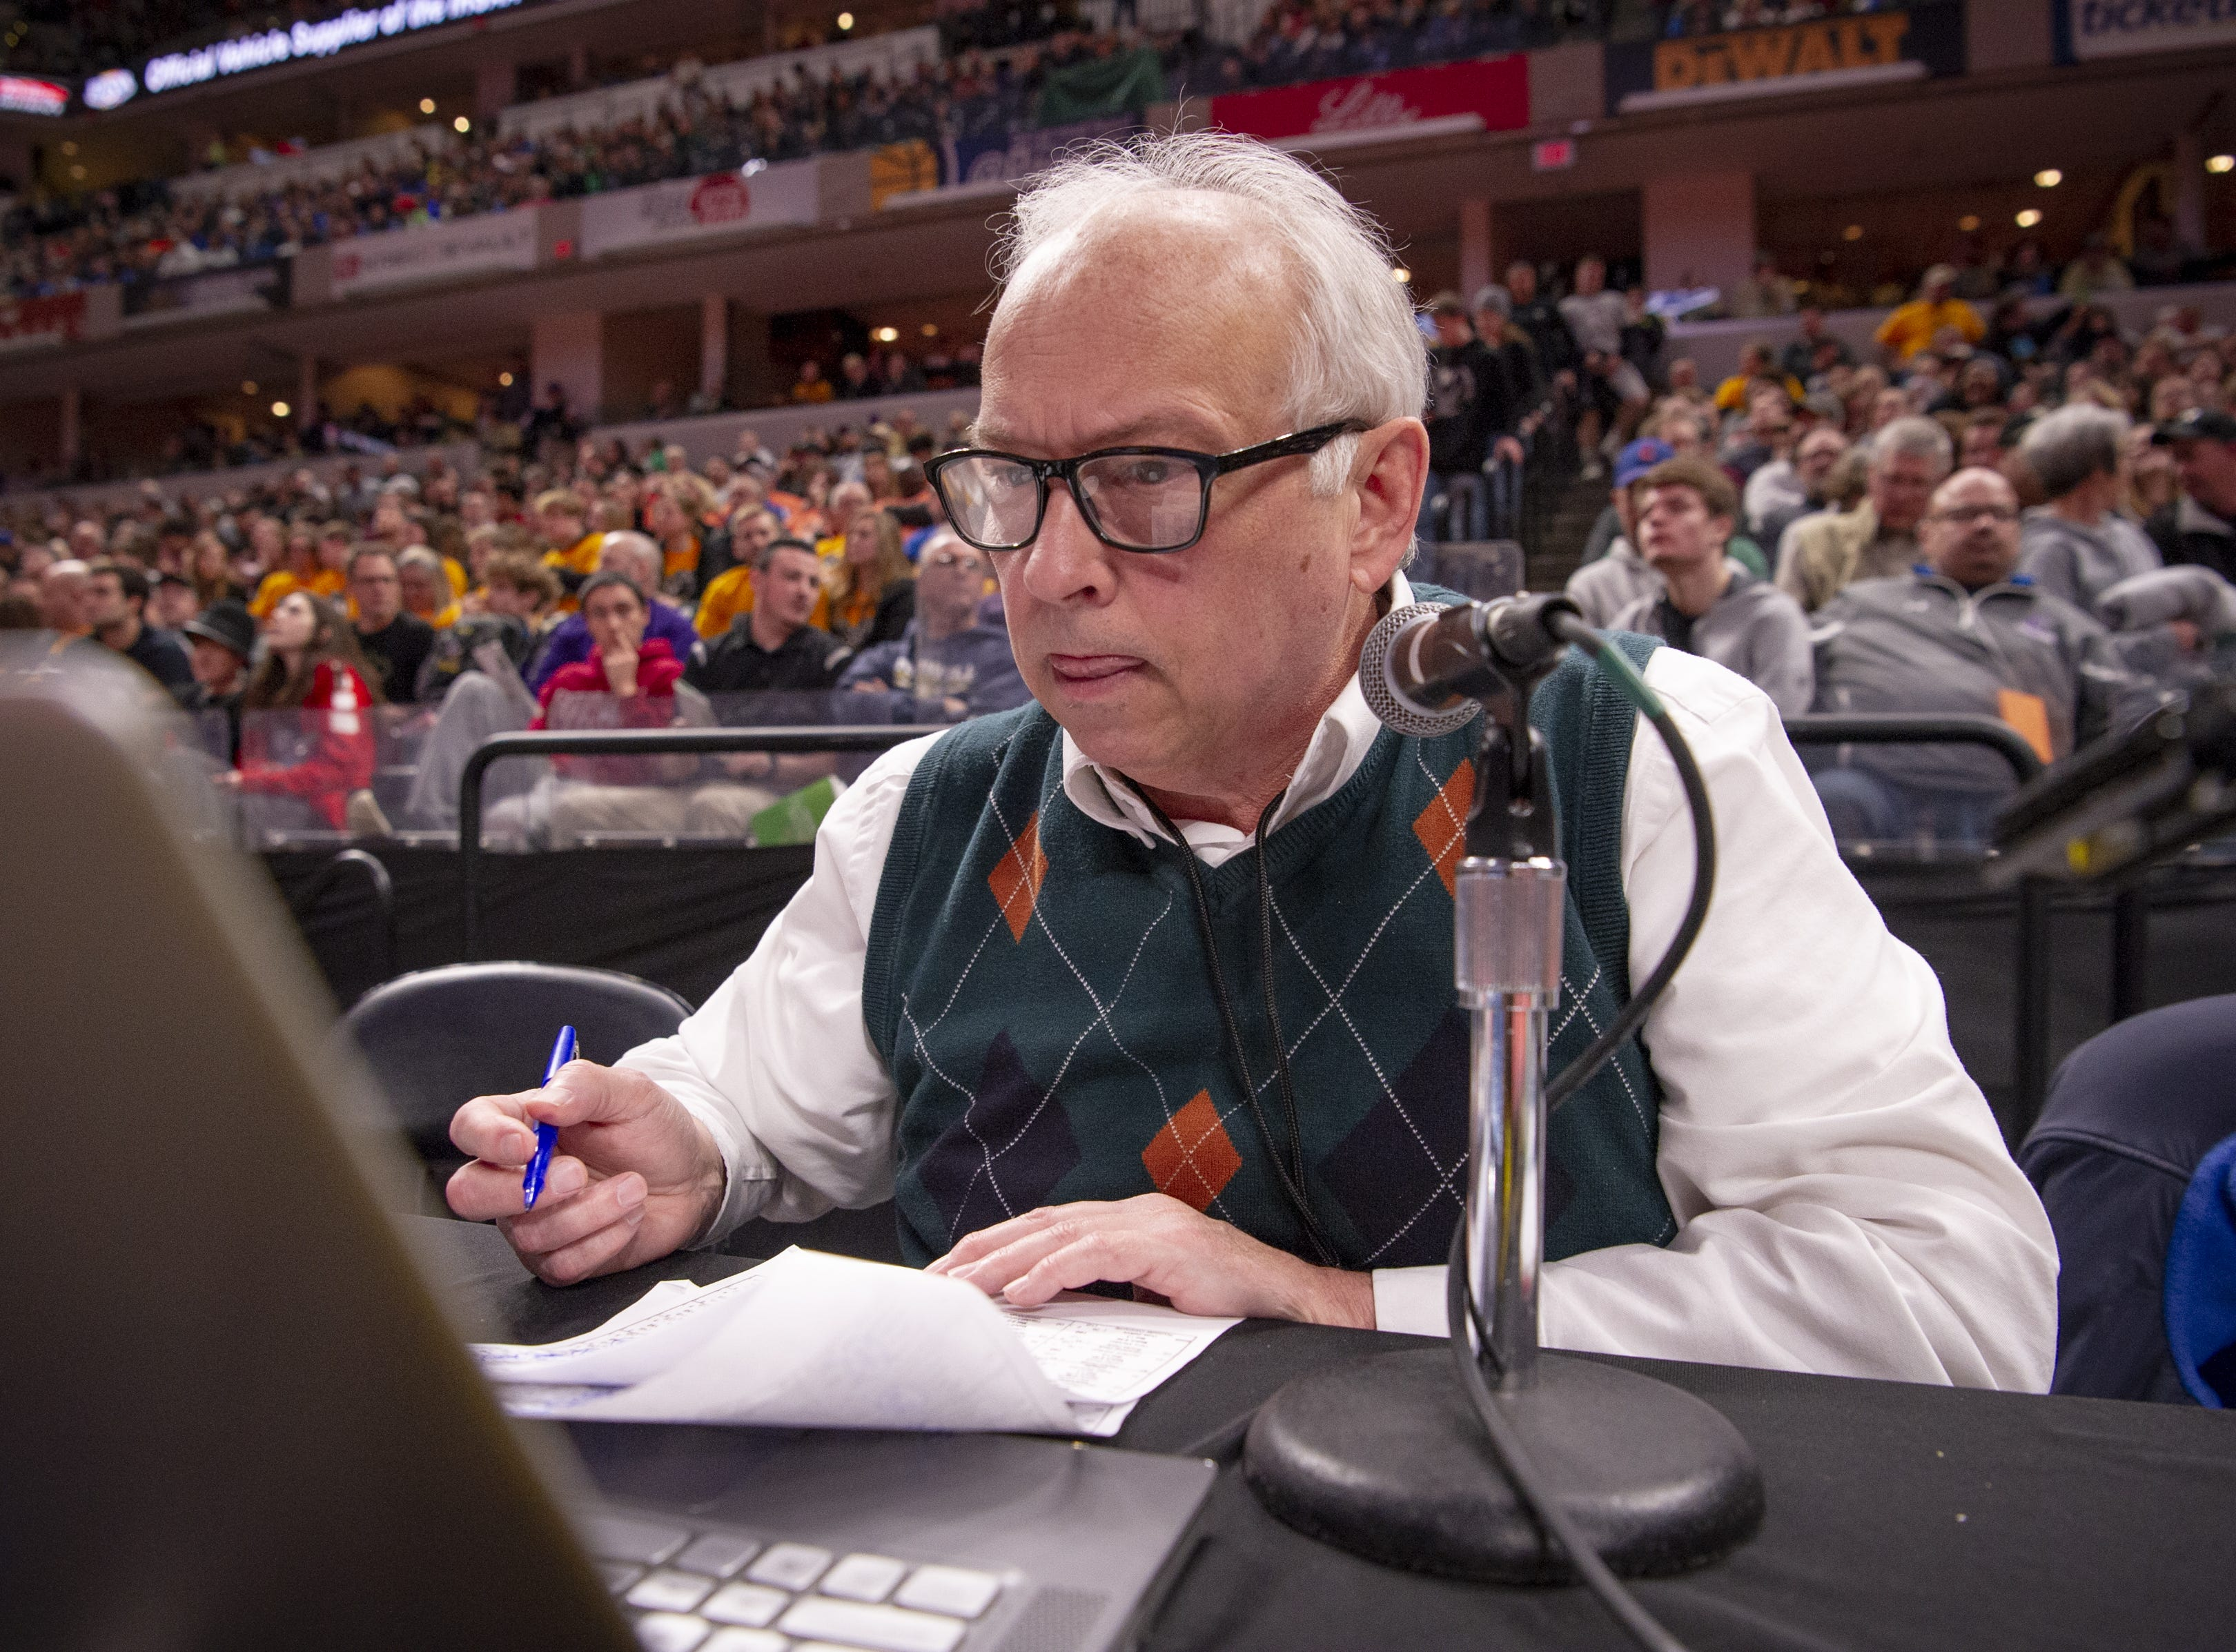 Kevin Whitehead has been the PA announcer for the during annual IHSAA Wrestling State Finals for the past 38 years. Tonight he continued the tradition at Bankers Life Fieldhouse in Indianapolis, Friday, Feb. 15, 2019.